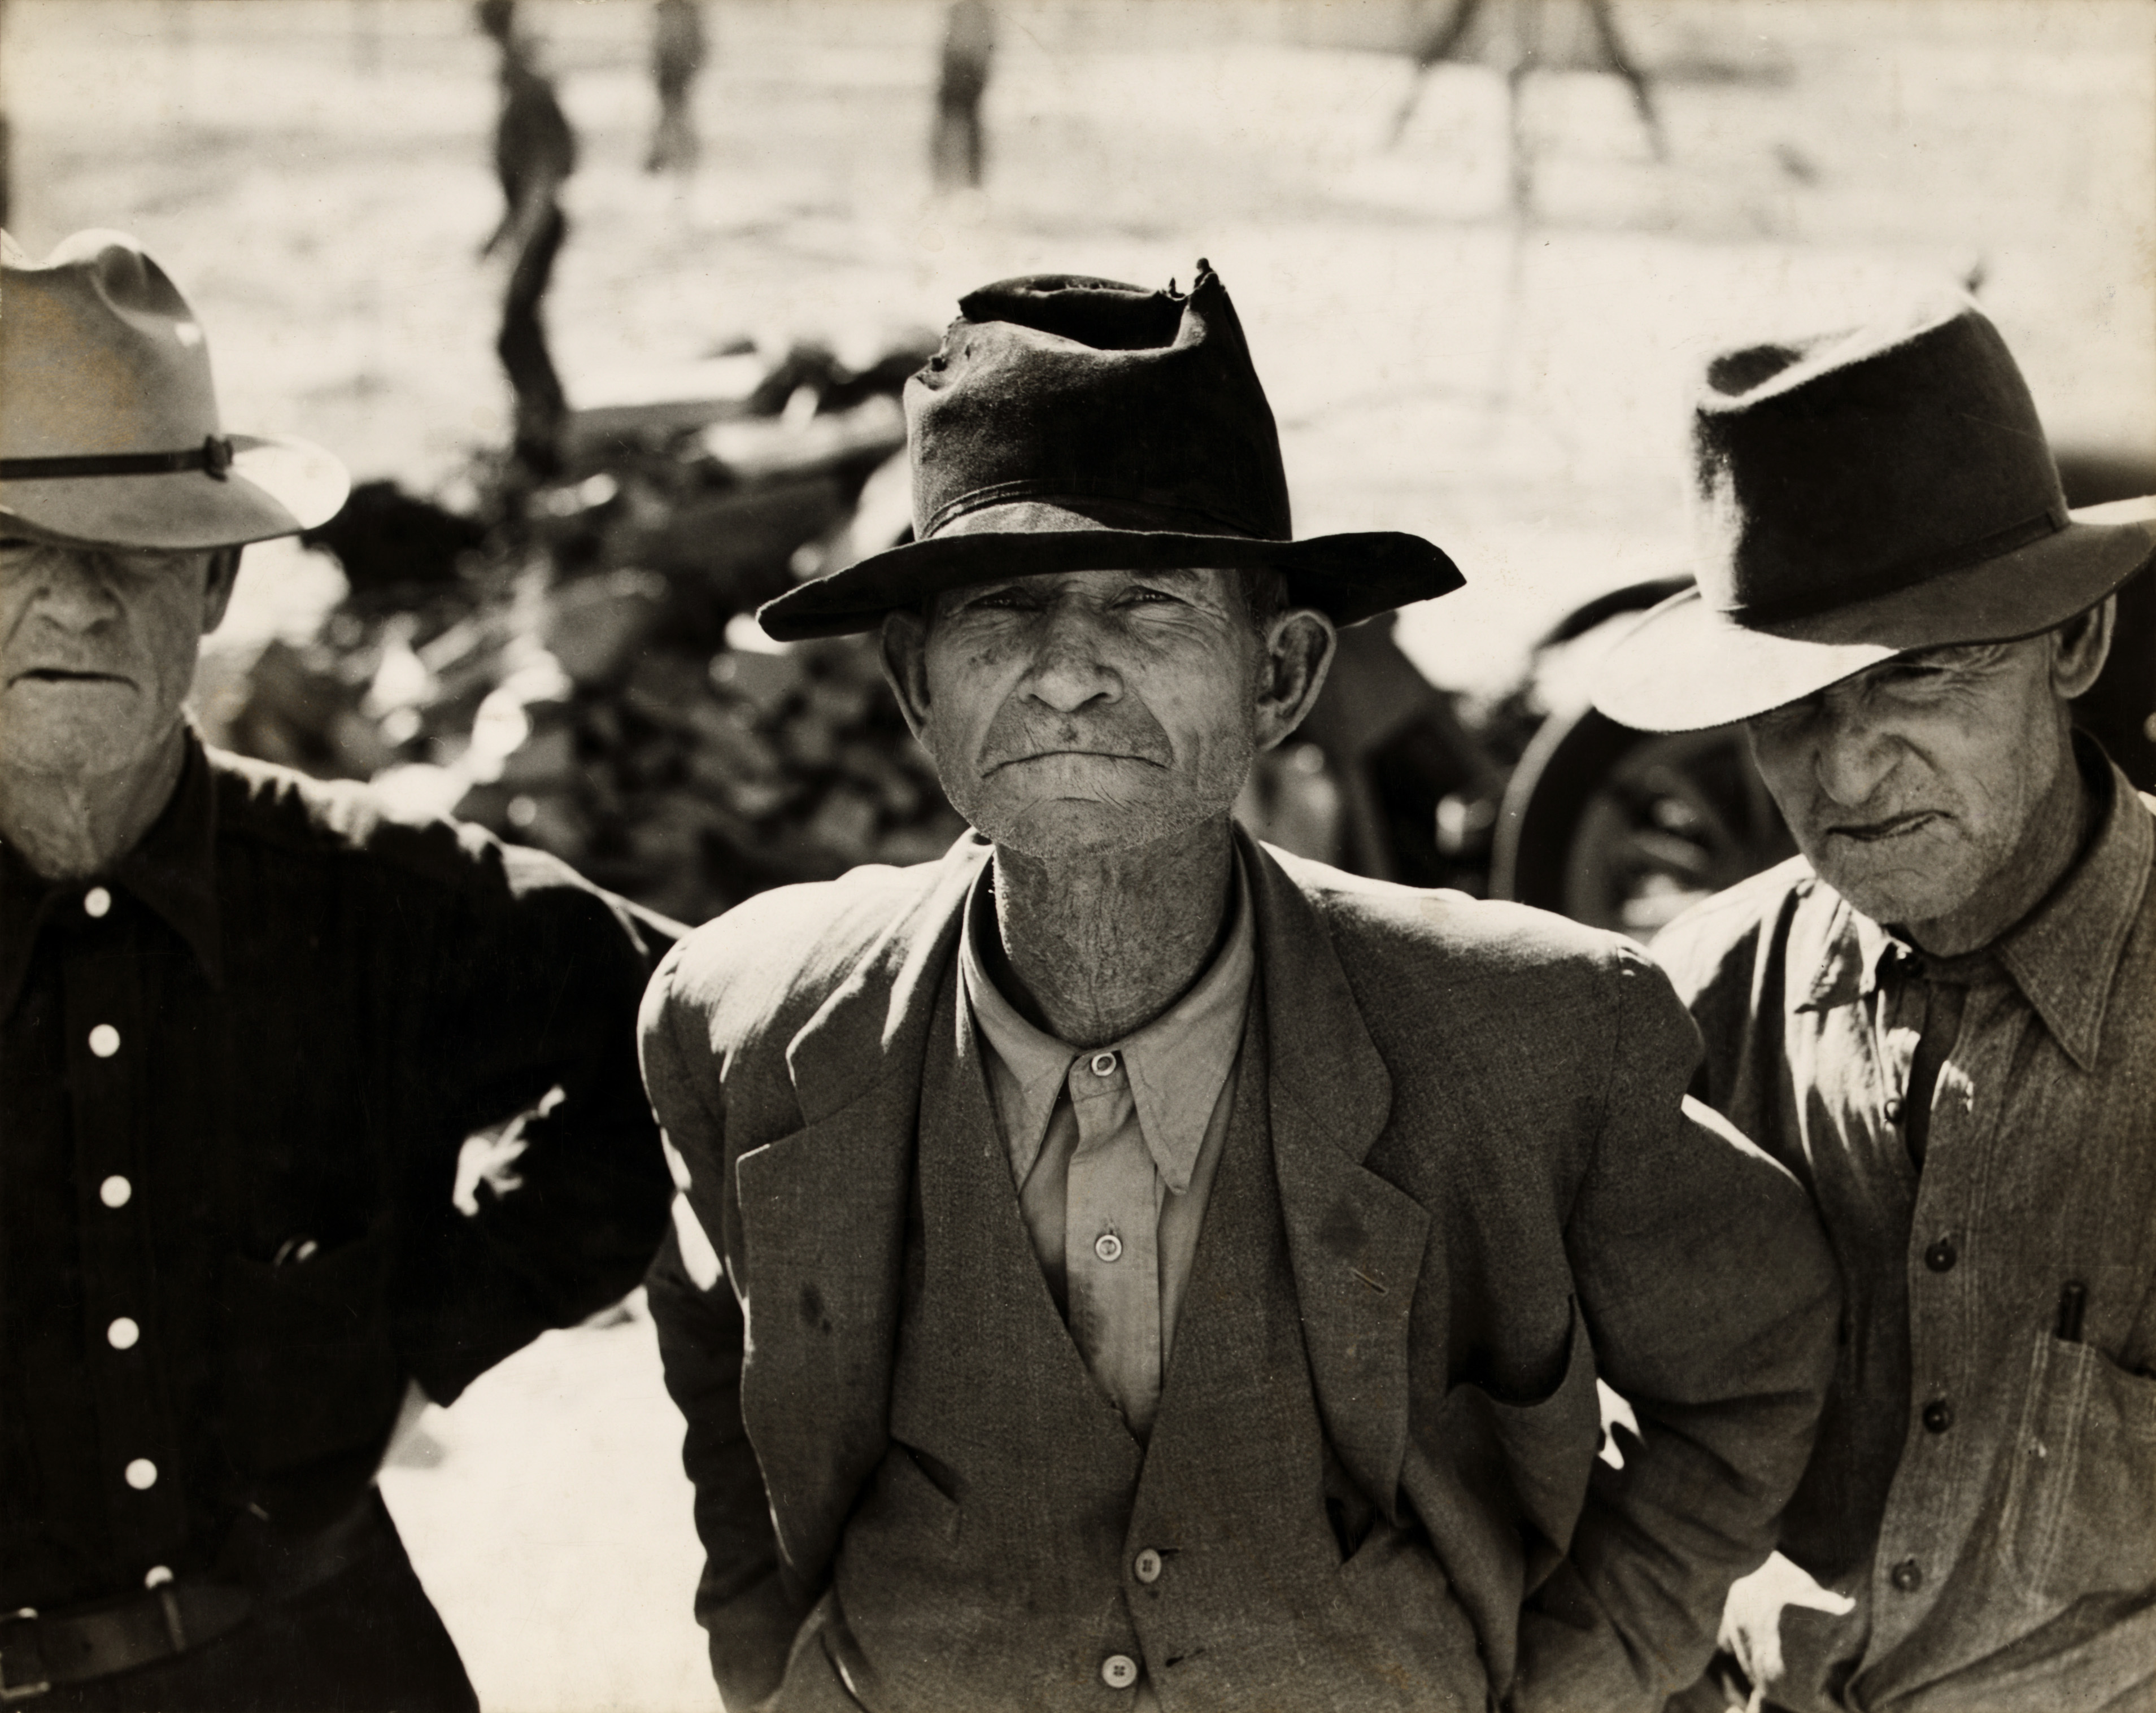 fsa photography during the great depression essay During the fsa's existence was a small but highly influential photography program that portrayed the galleries of fsa photographers the great depression.